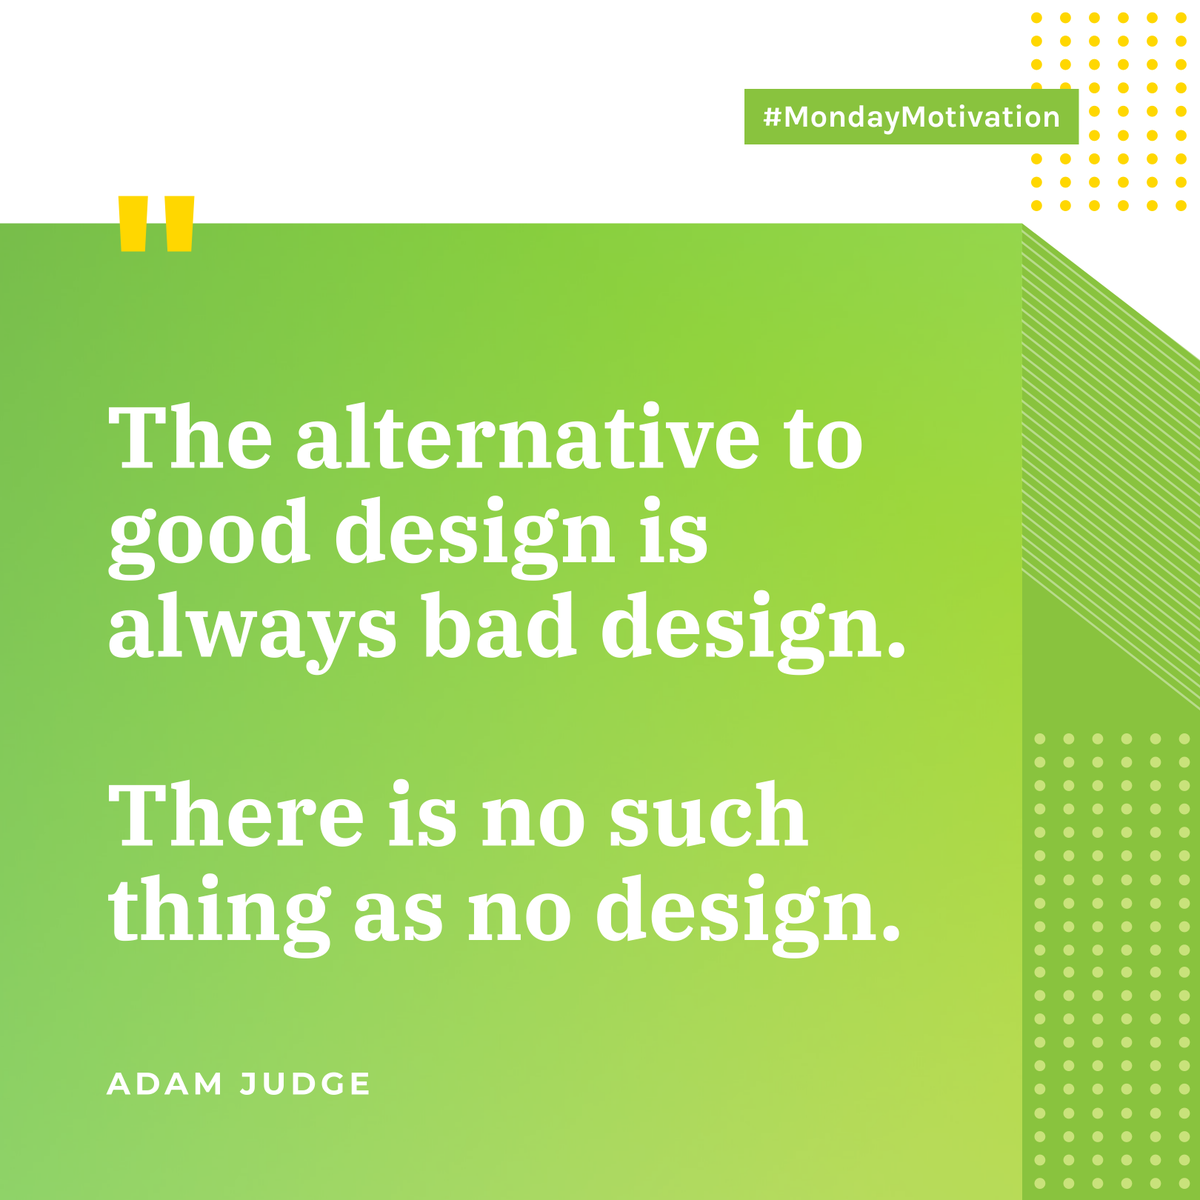 Everything we interact with is designed.✨✍️ Design is functional and shapes the future. #MondayMotivation